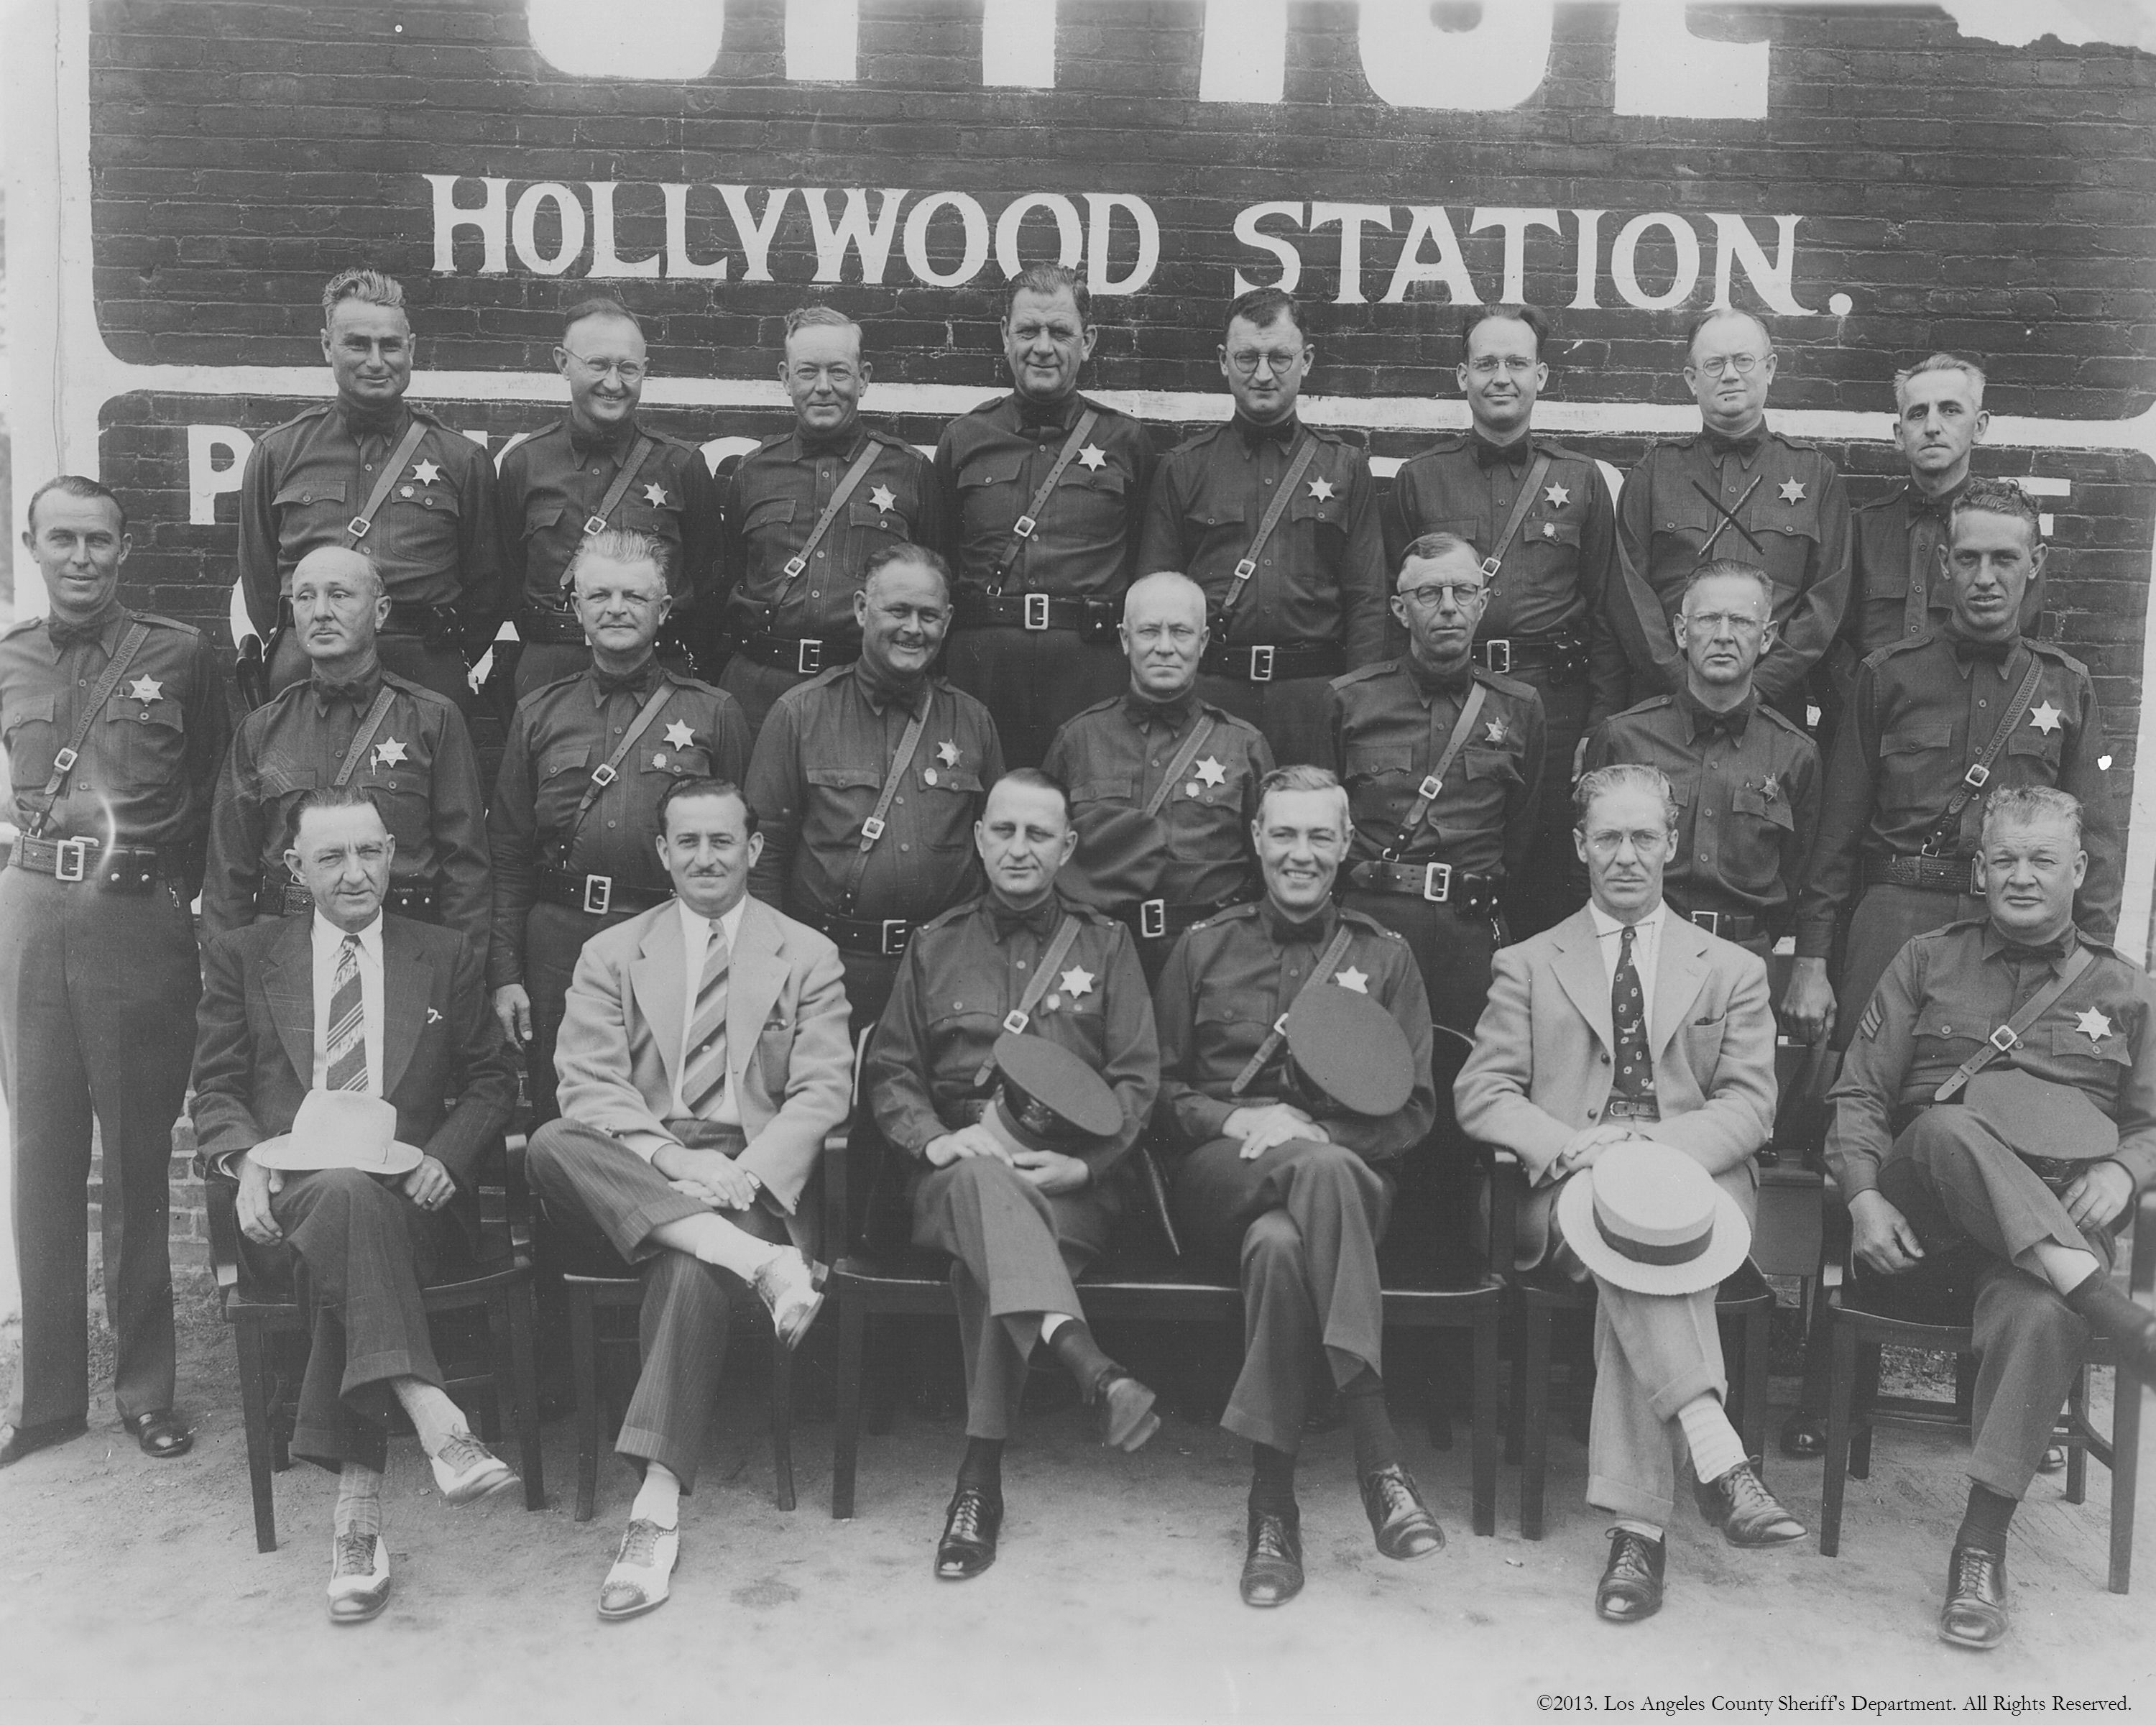 Hollywood Station Now West Hollywood Unknown Year Los Angeles Police Department Los Angeles History Sheriff